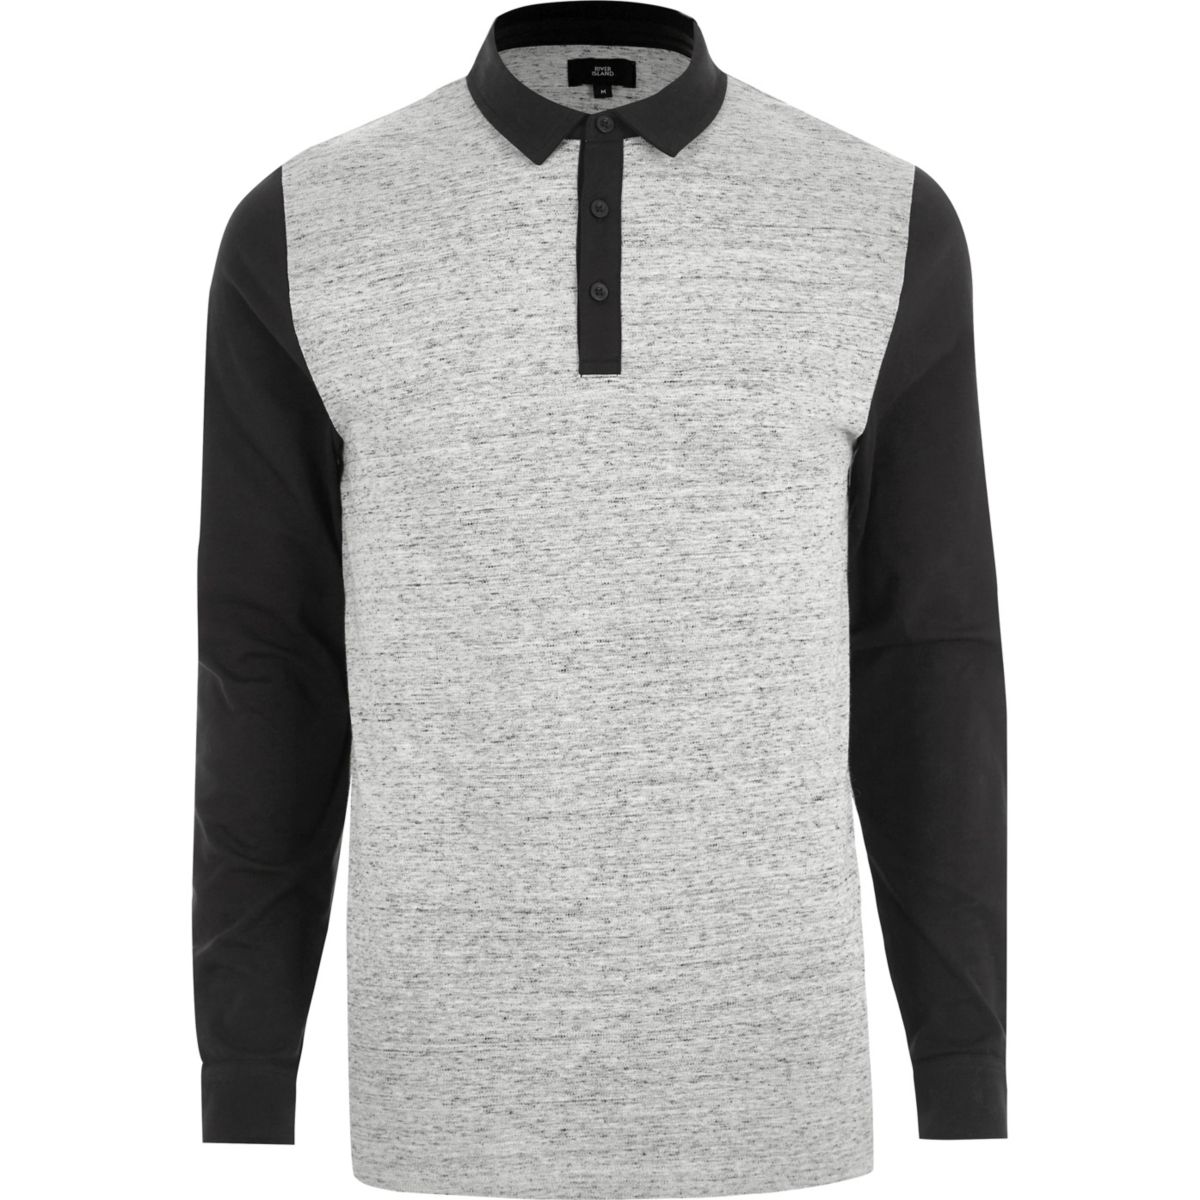 Grey slim fit block long sleeve polo shirt